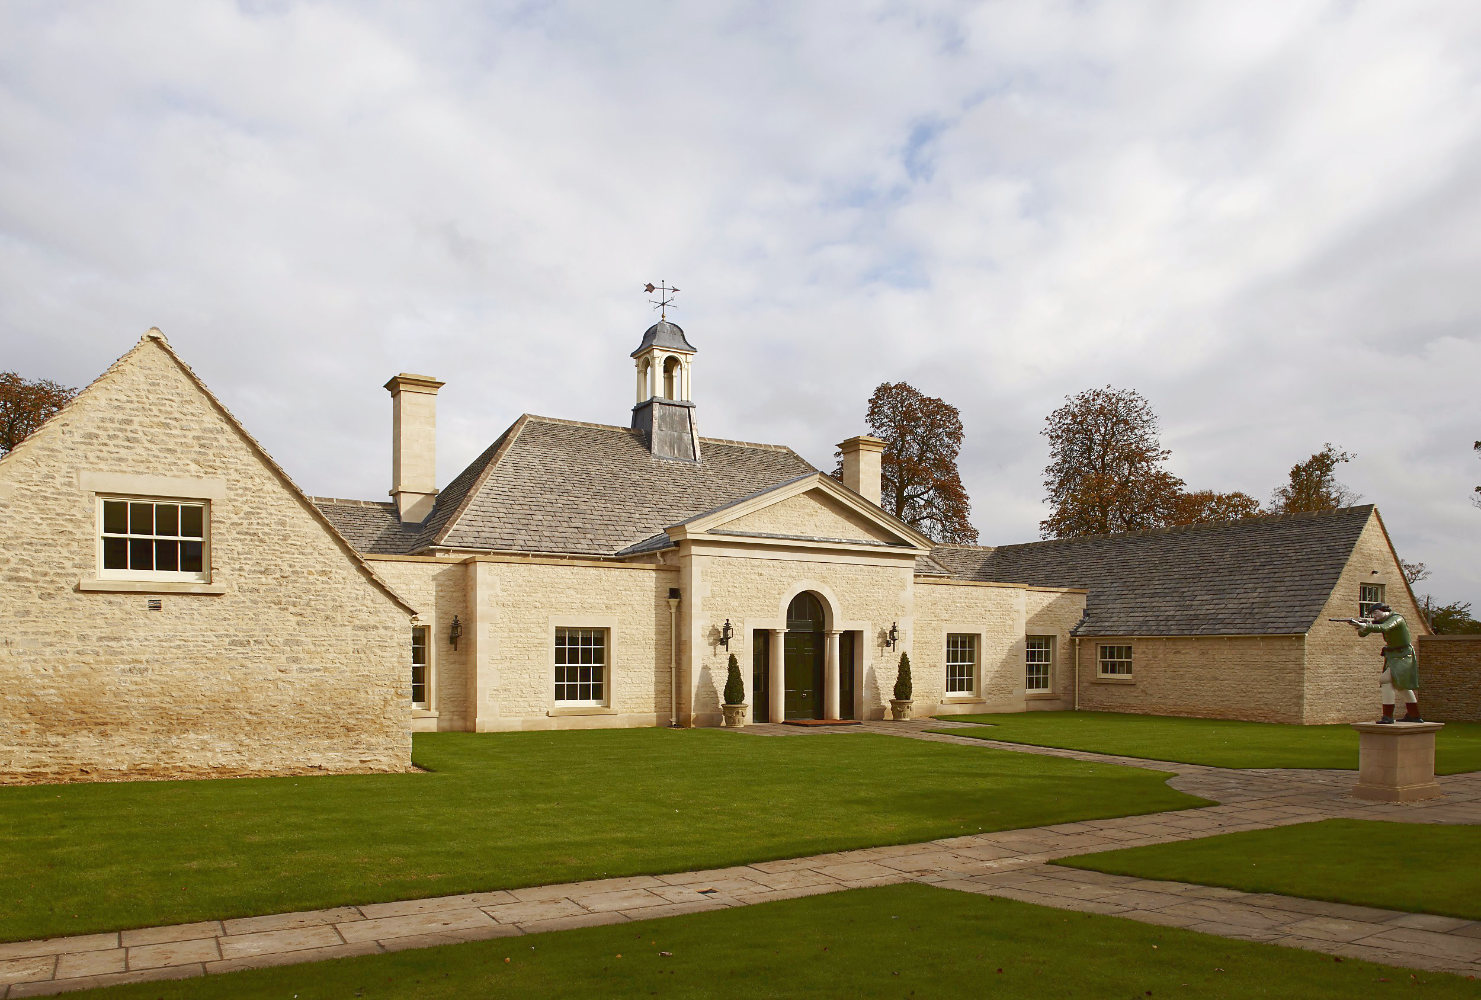 weathervane-copper-bespoke-country-estate-cotswolds-donkeywell-forge